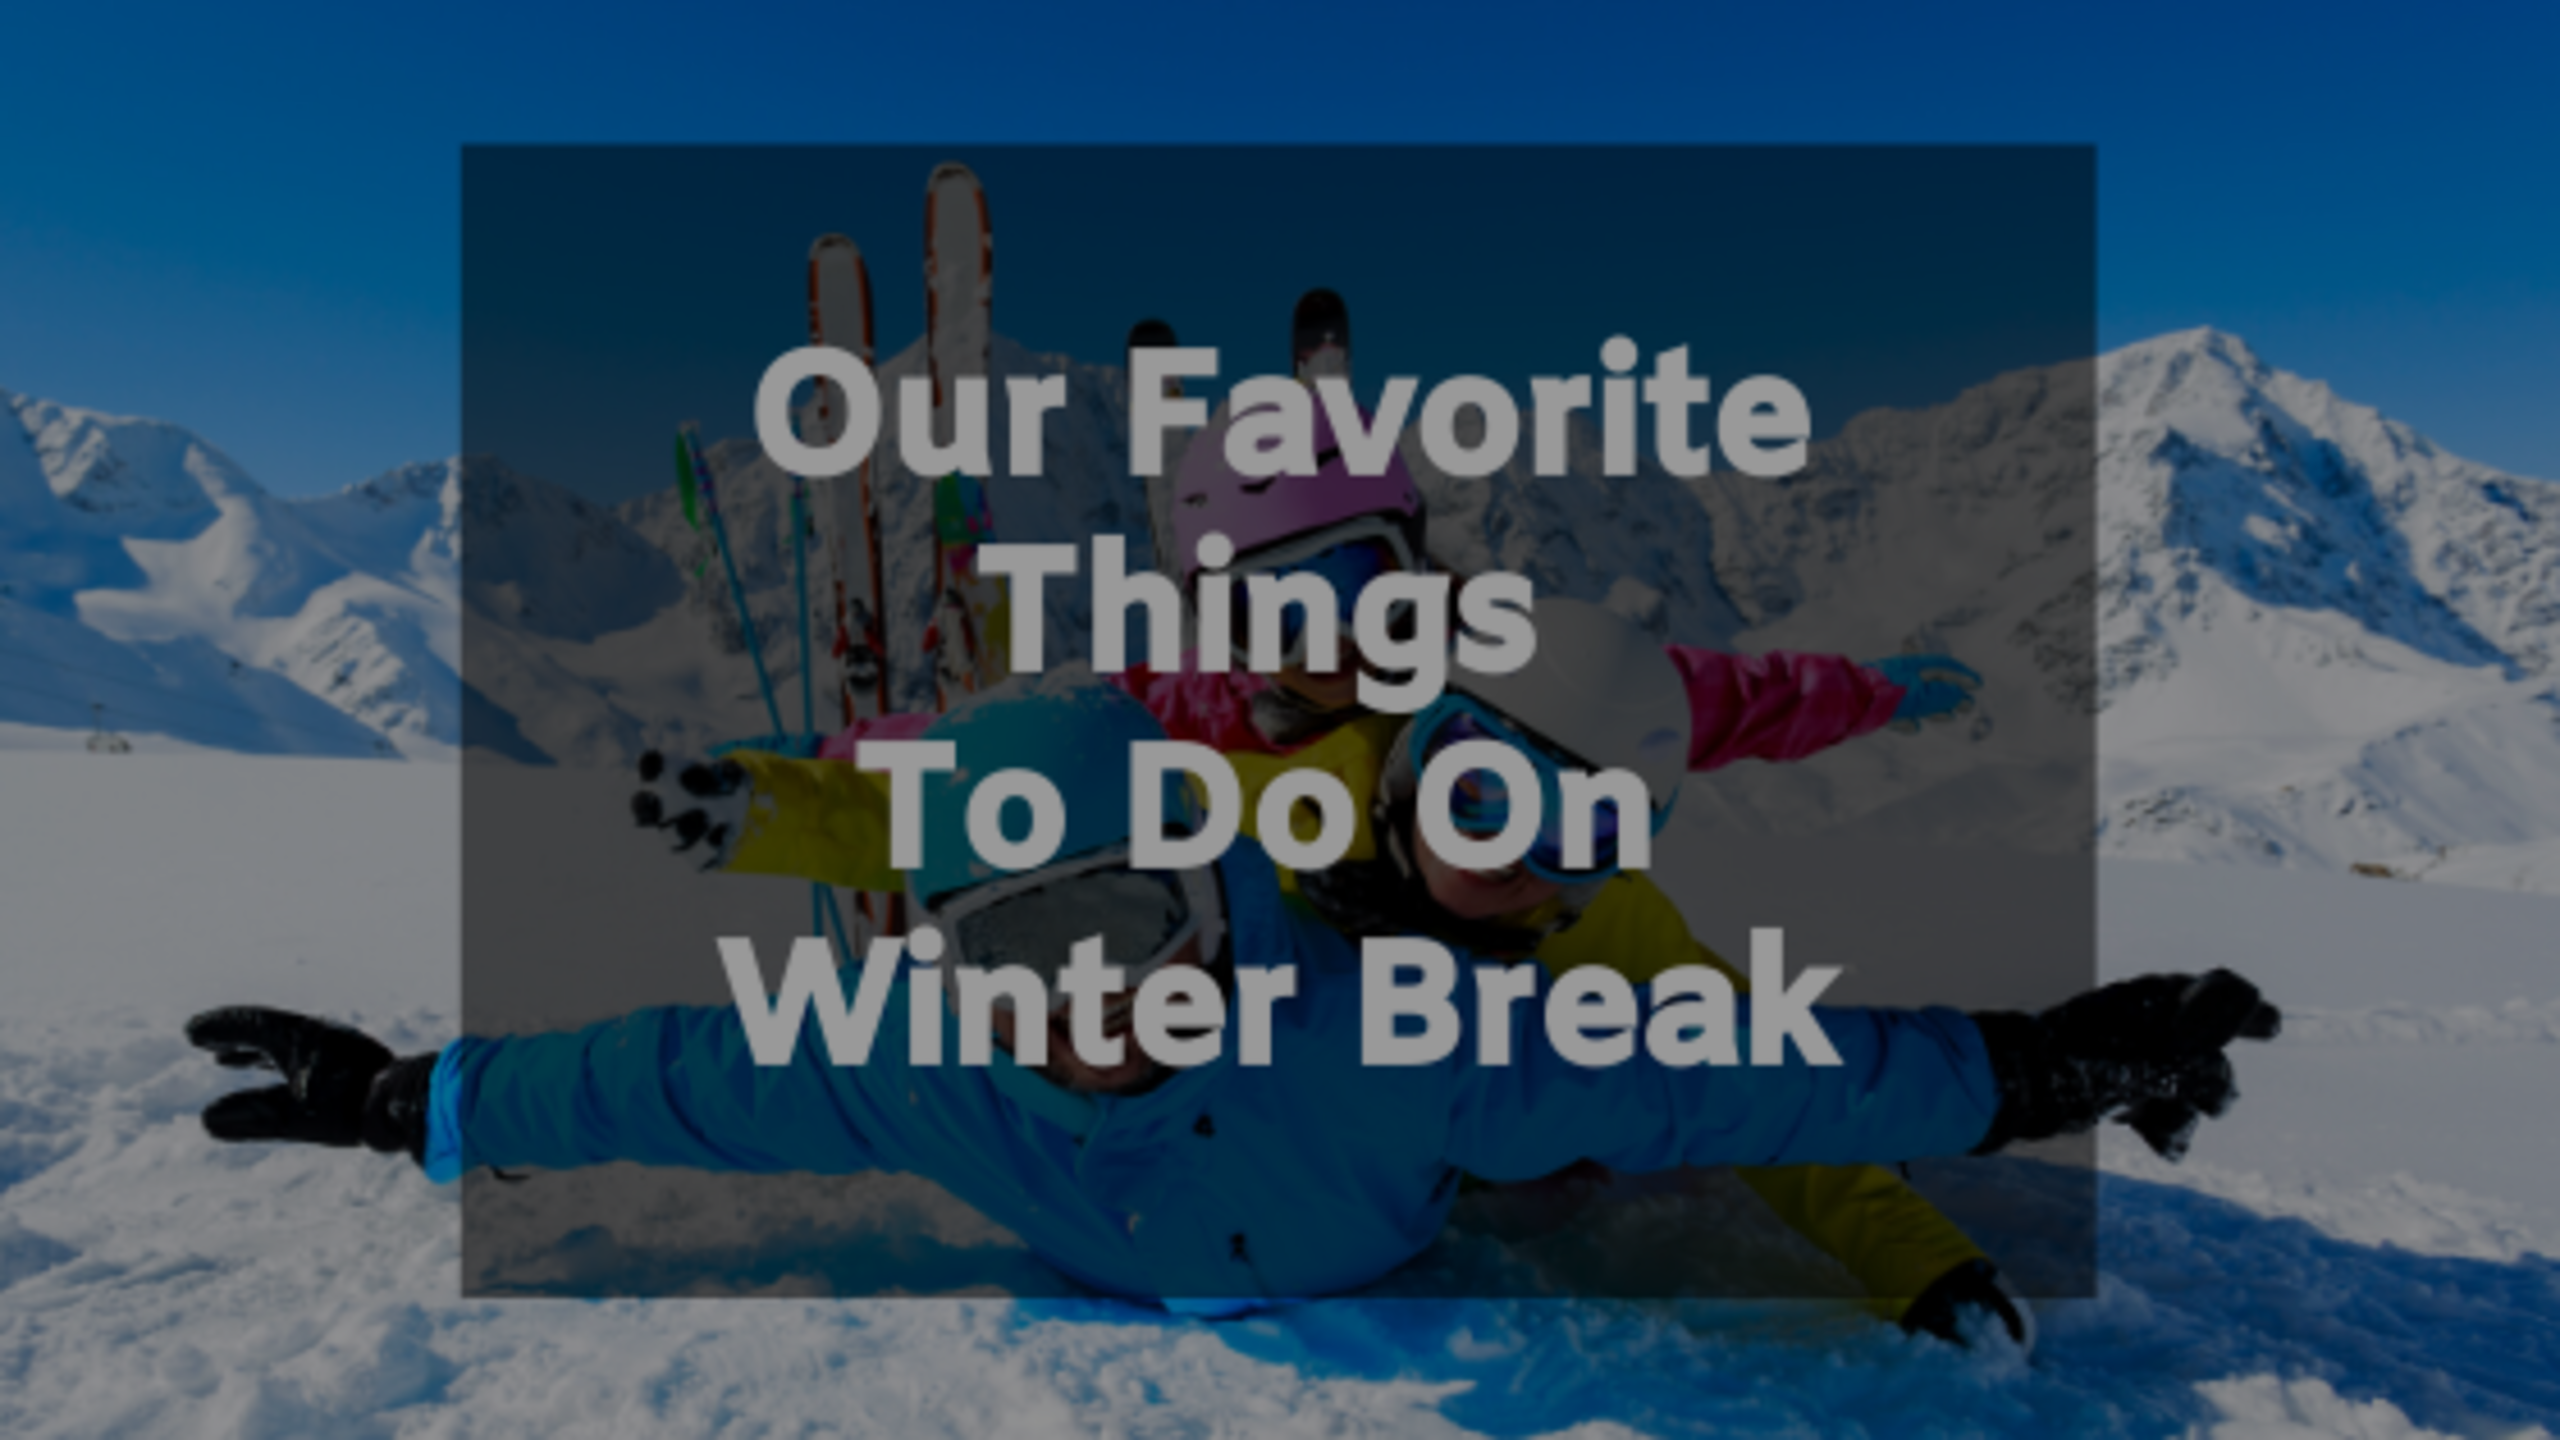 Our Favorite Things To Do On Winter Break